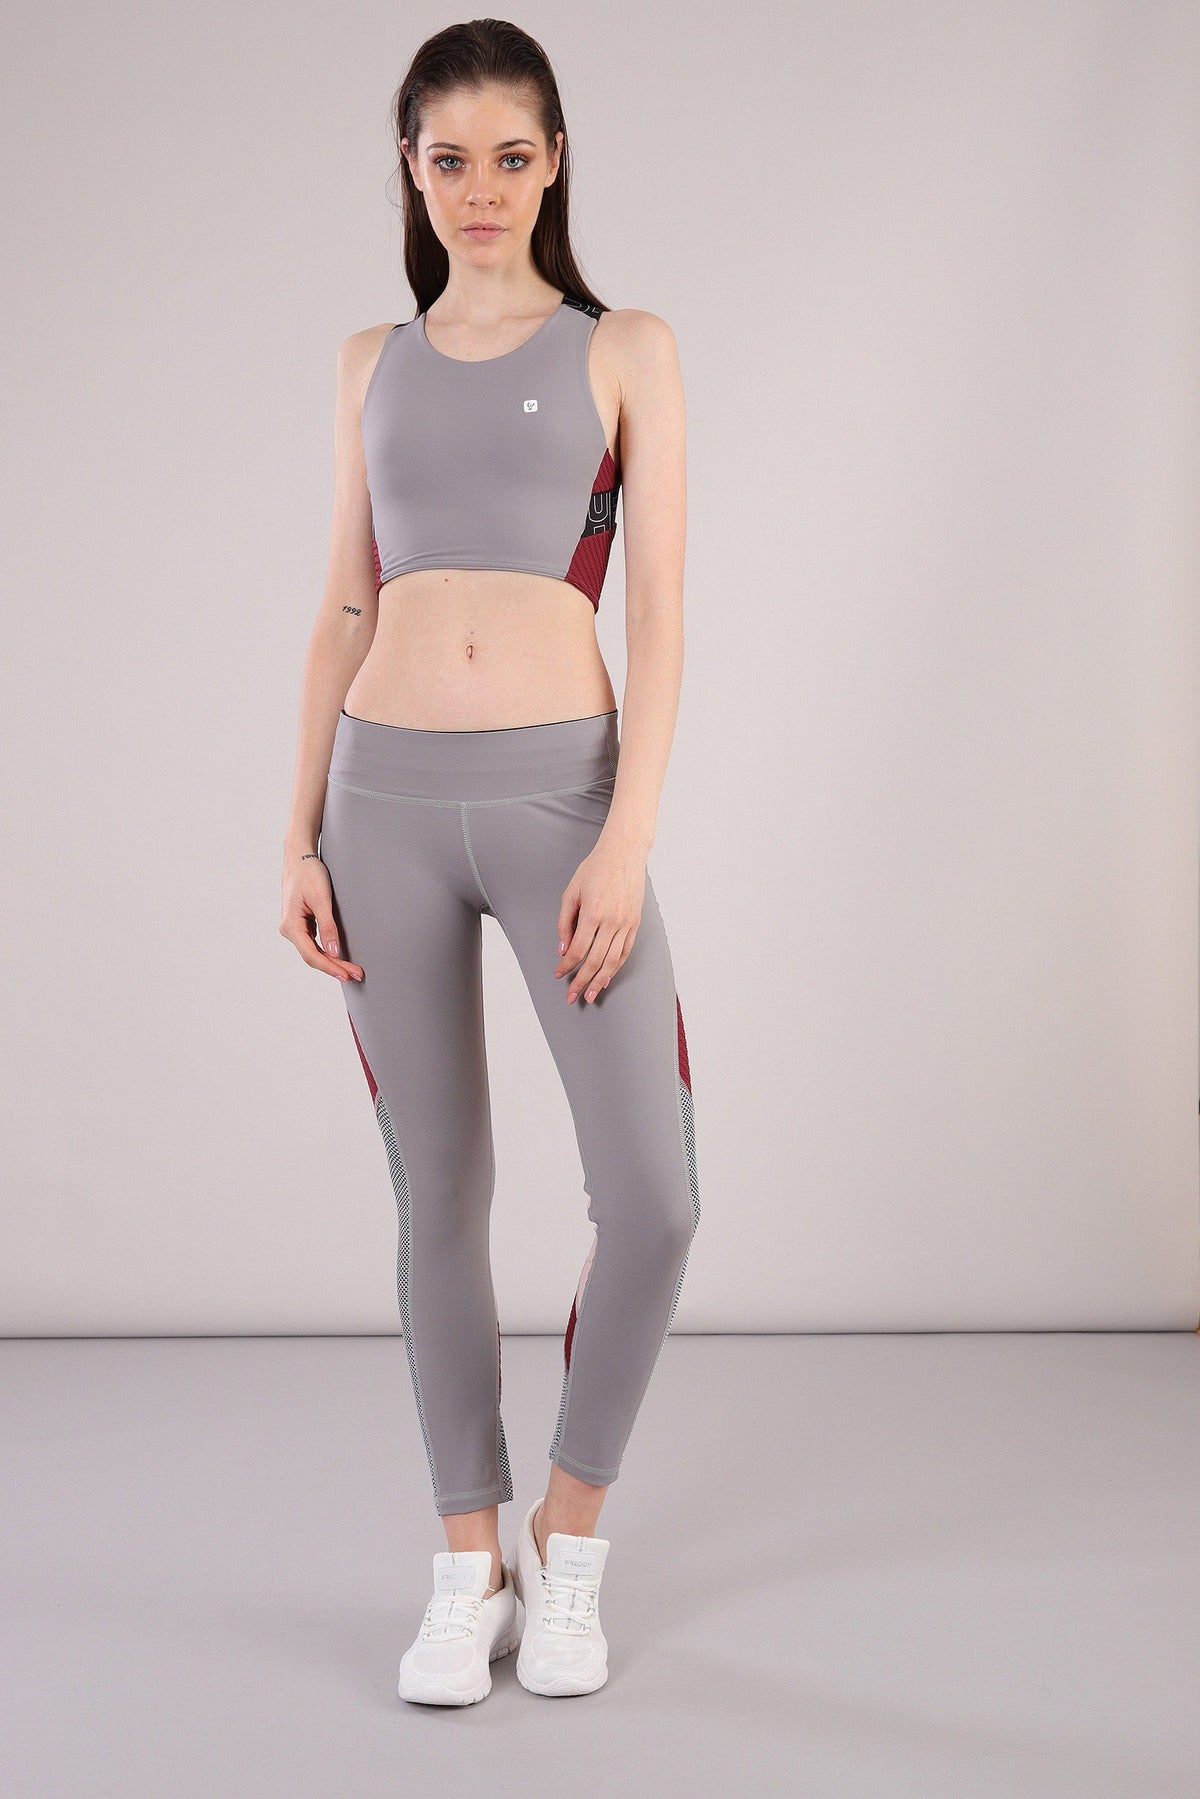 MII GREY SPORTS BRA